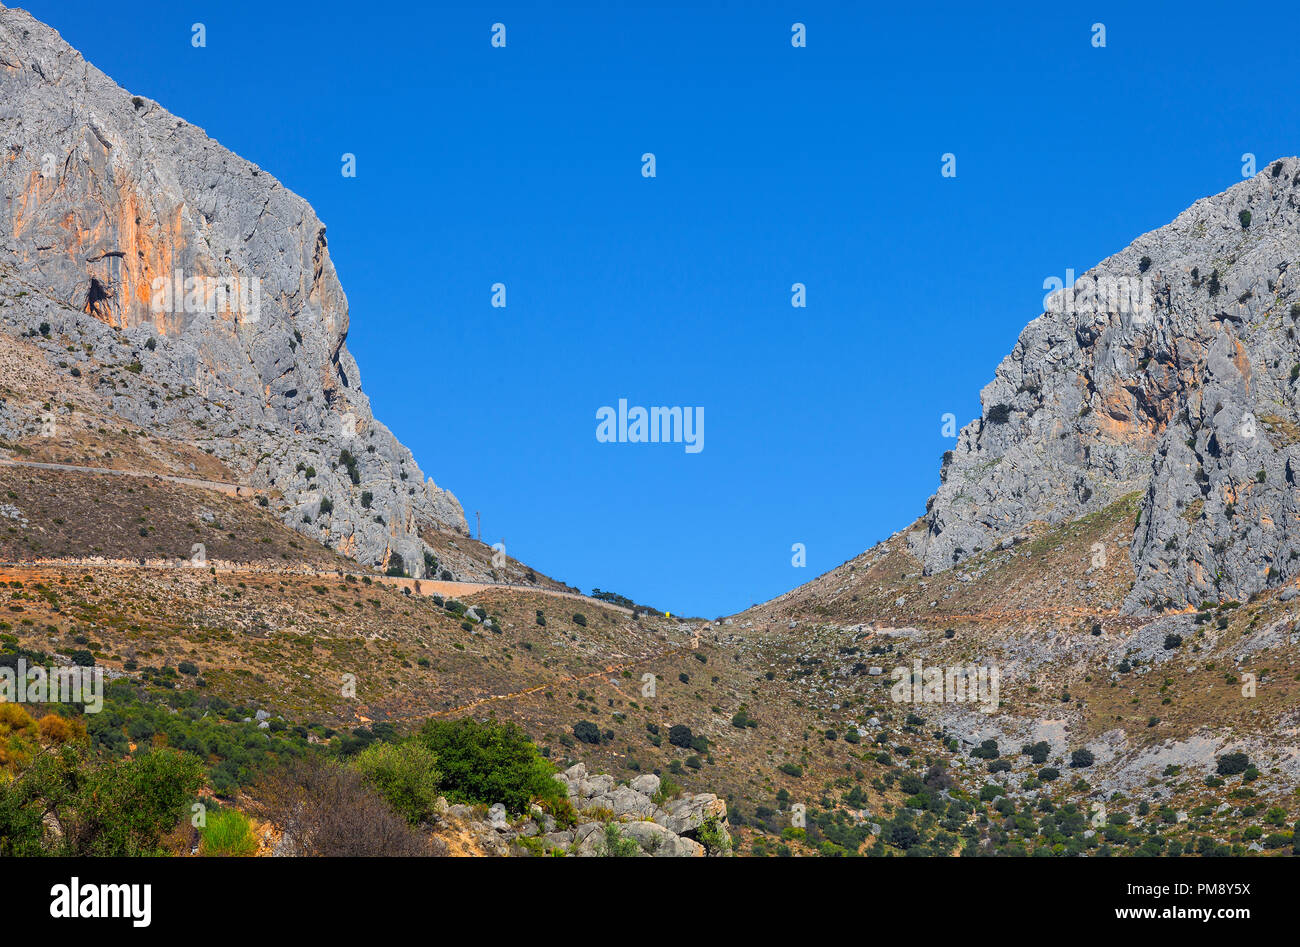 El Boquete de Zafarraya, a mountain pass of the Cordillera Penibética , located in the Sierra de Alhama , between the provinces of Málaga and Granada  - Stock Image